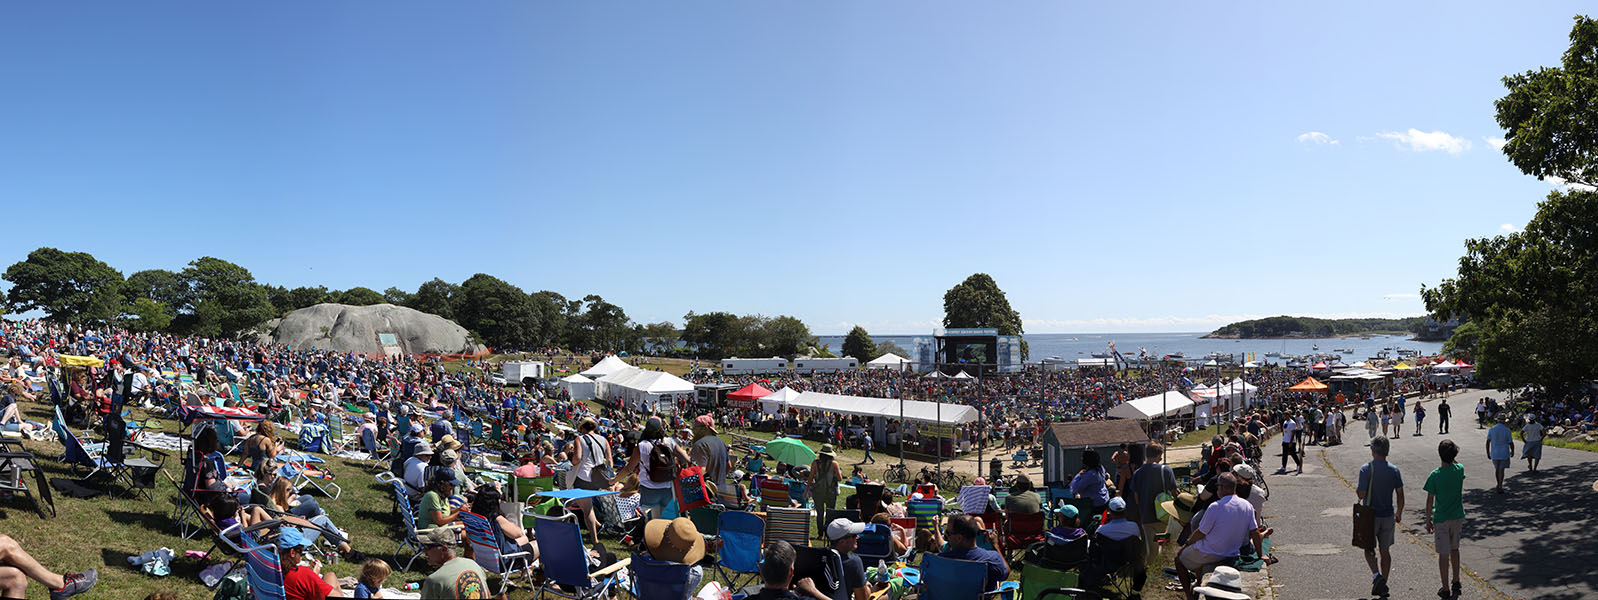 Panoramic View of an Outdoor Music Festival in Stage Fort Park, Gloucester, Massachusetts.